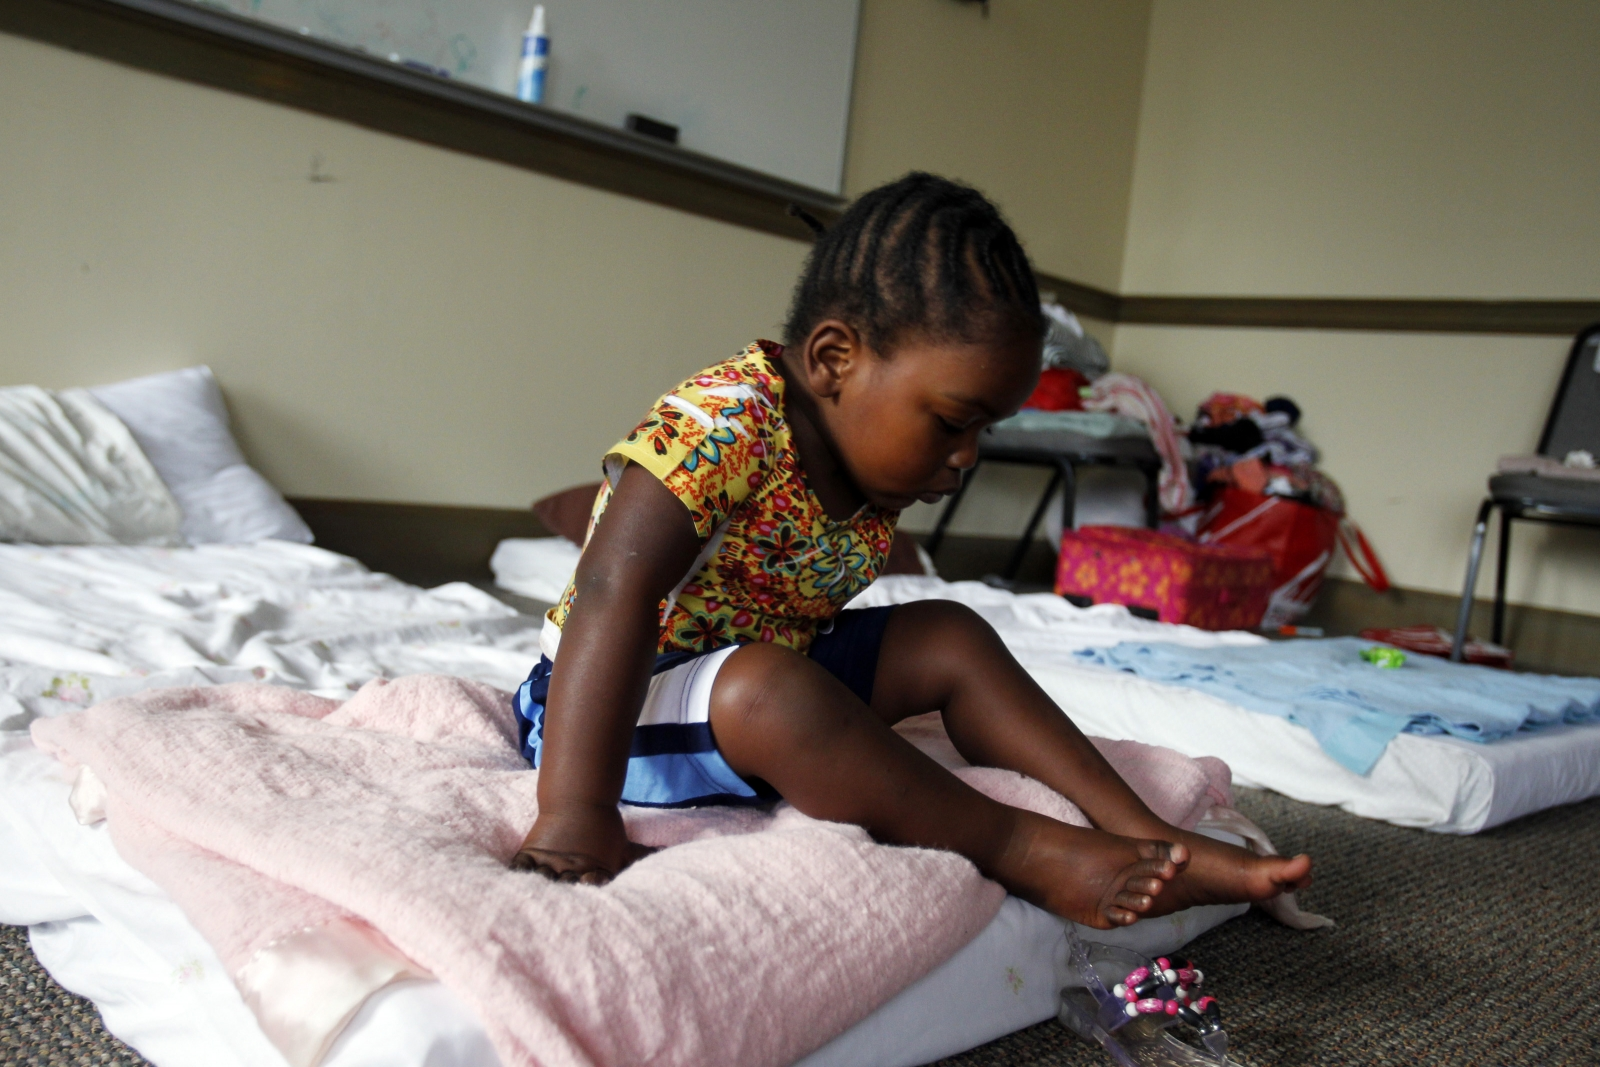 Two-year-old girl at the Covenant Presbyterian Church temporary shelter in Charlotte, North Carolina